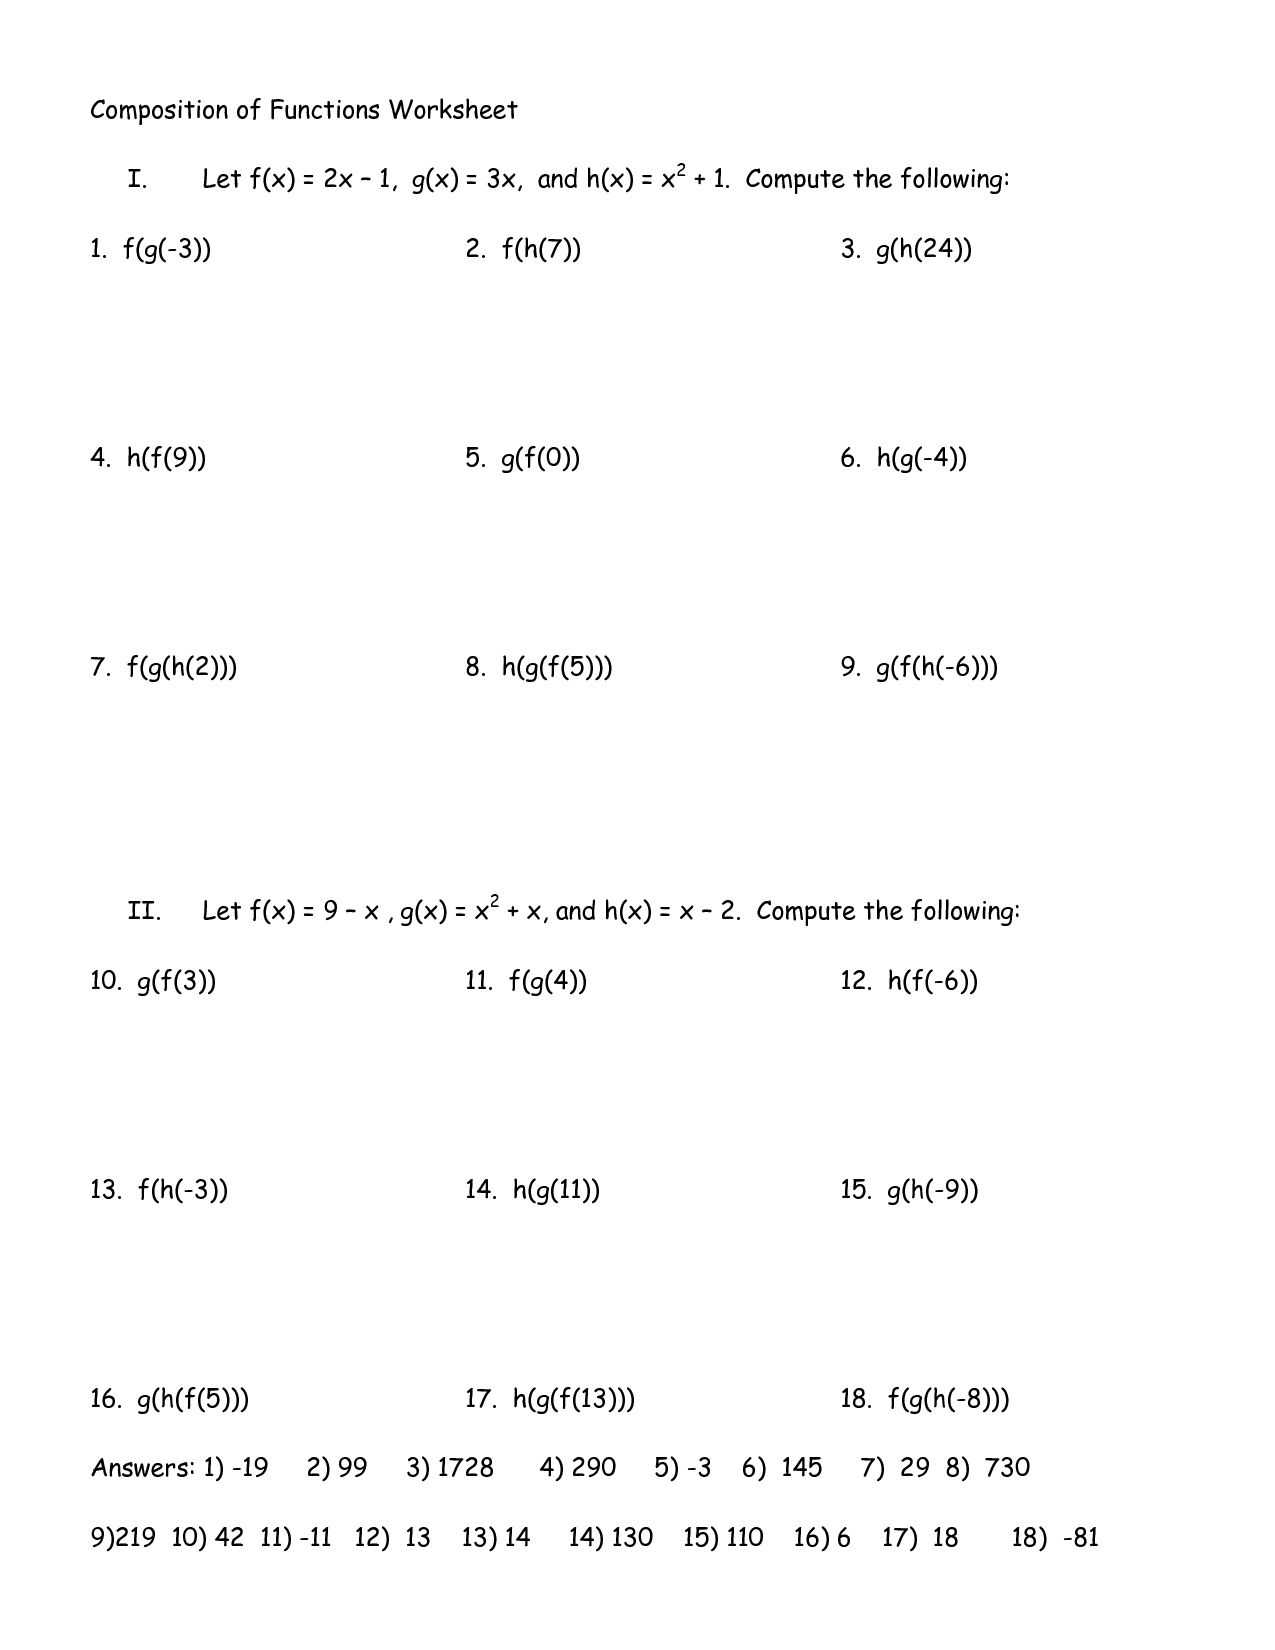 Composition And Inverse Function Worksheet   Printable